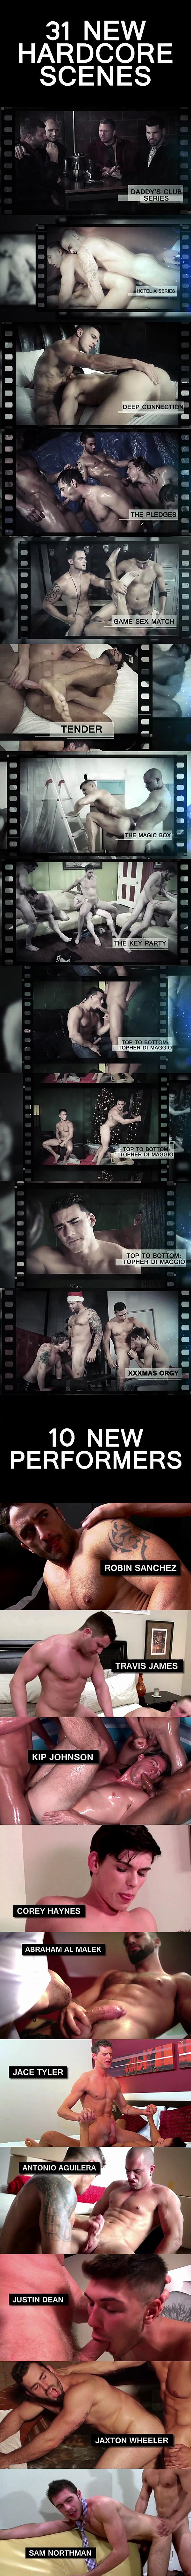 31 hot new scenes will be released at Men.com in December, including Topher DiMaggio's bottoming debut in Top to Bottom Part 6 at Men 01